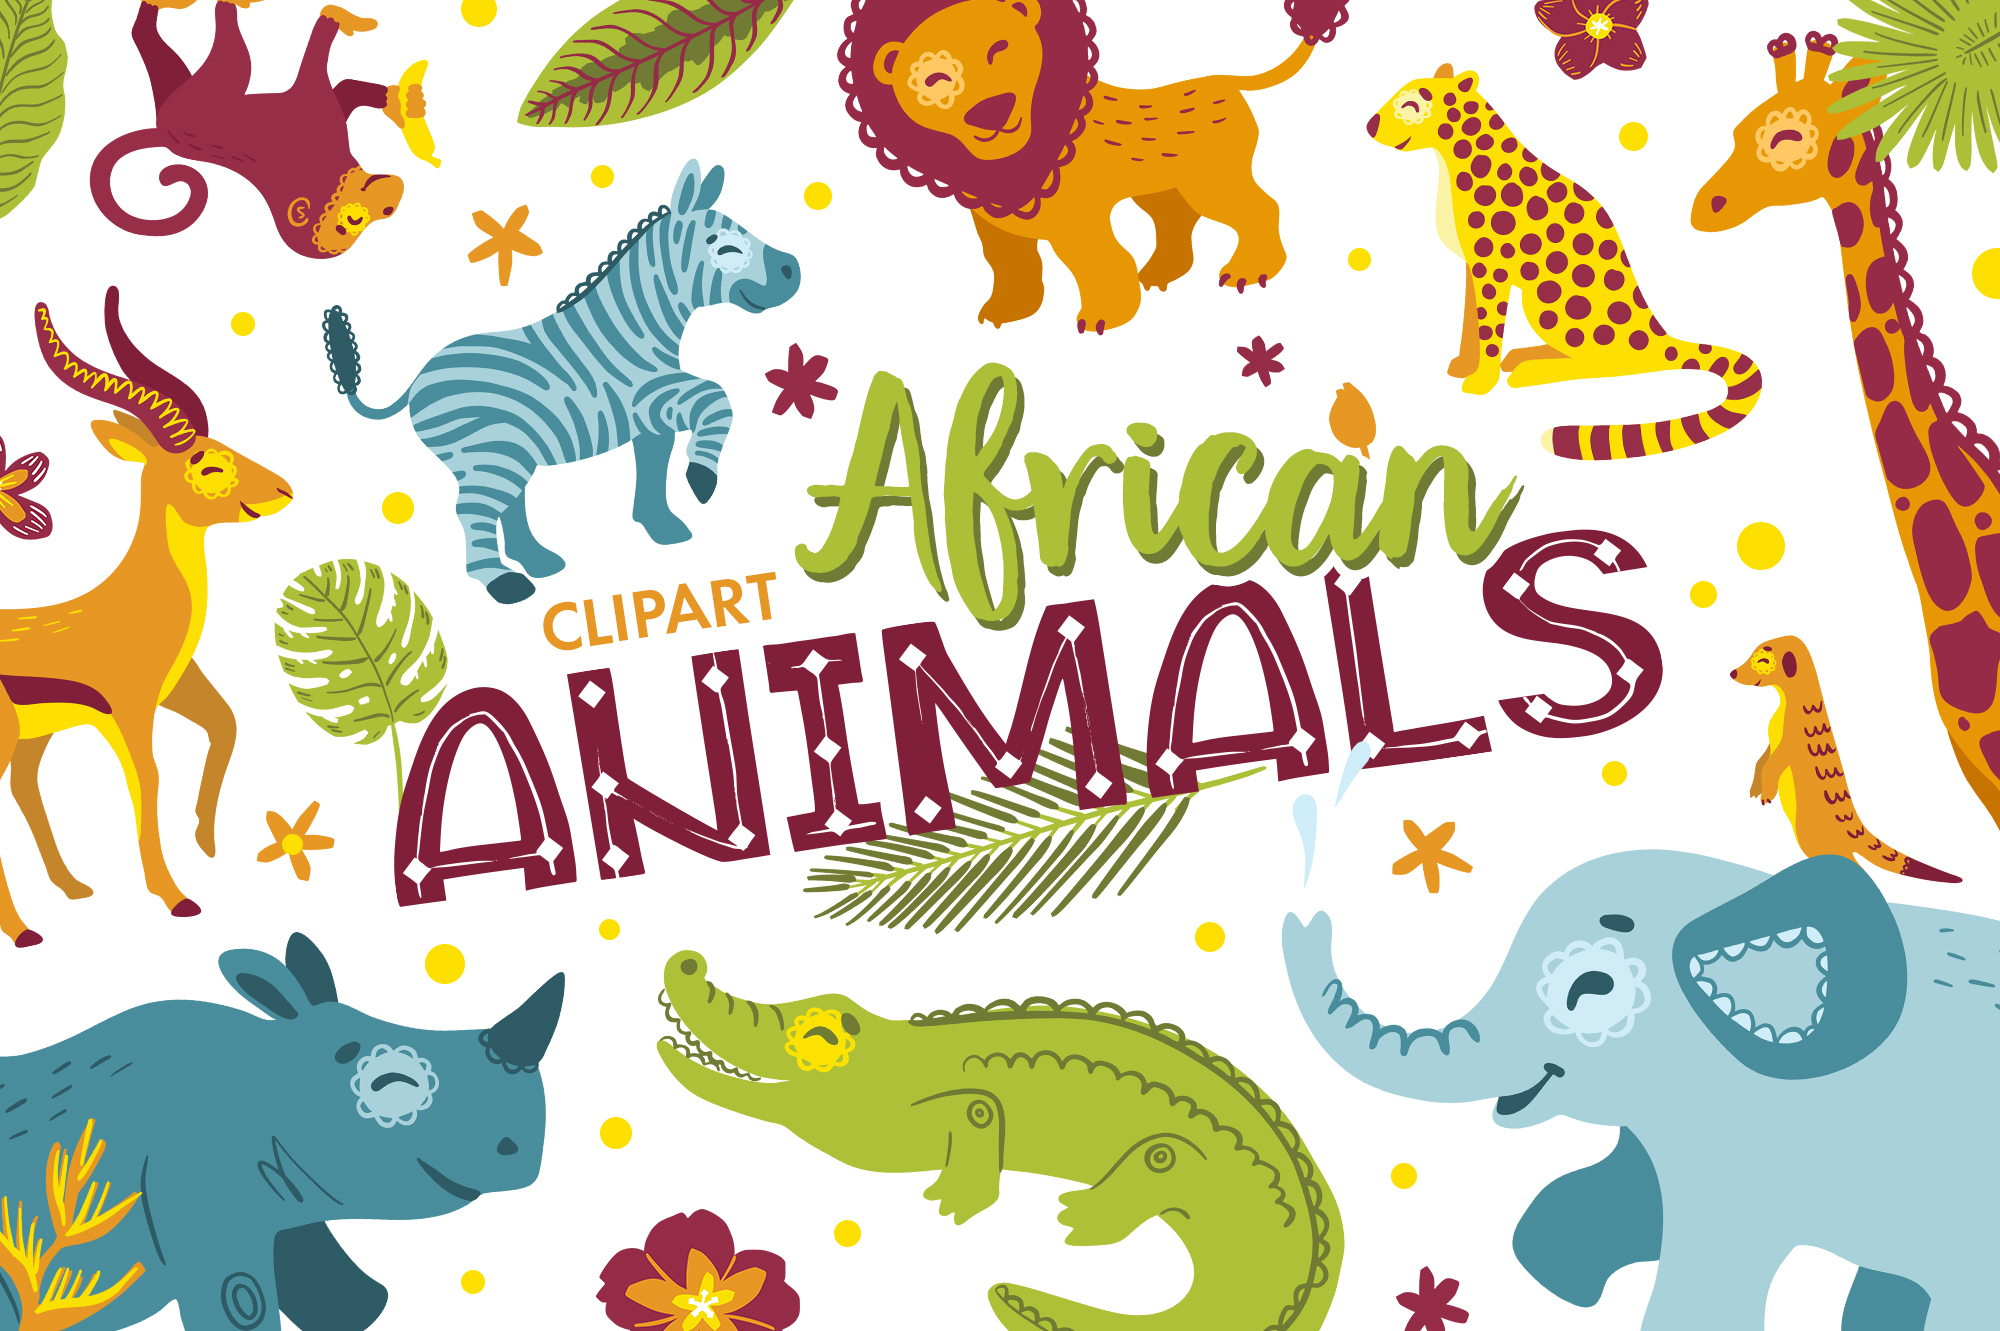 African animals clipart and alphabet vector example image 1